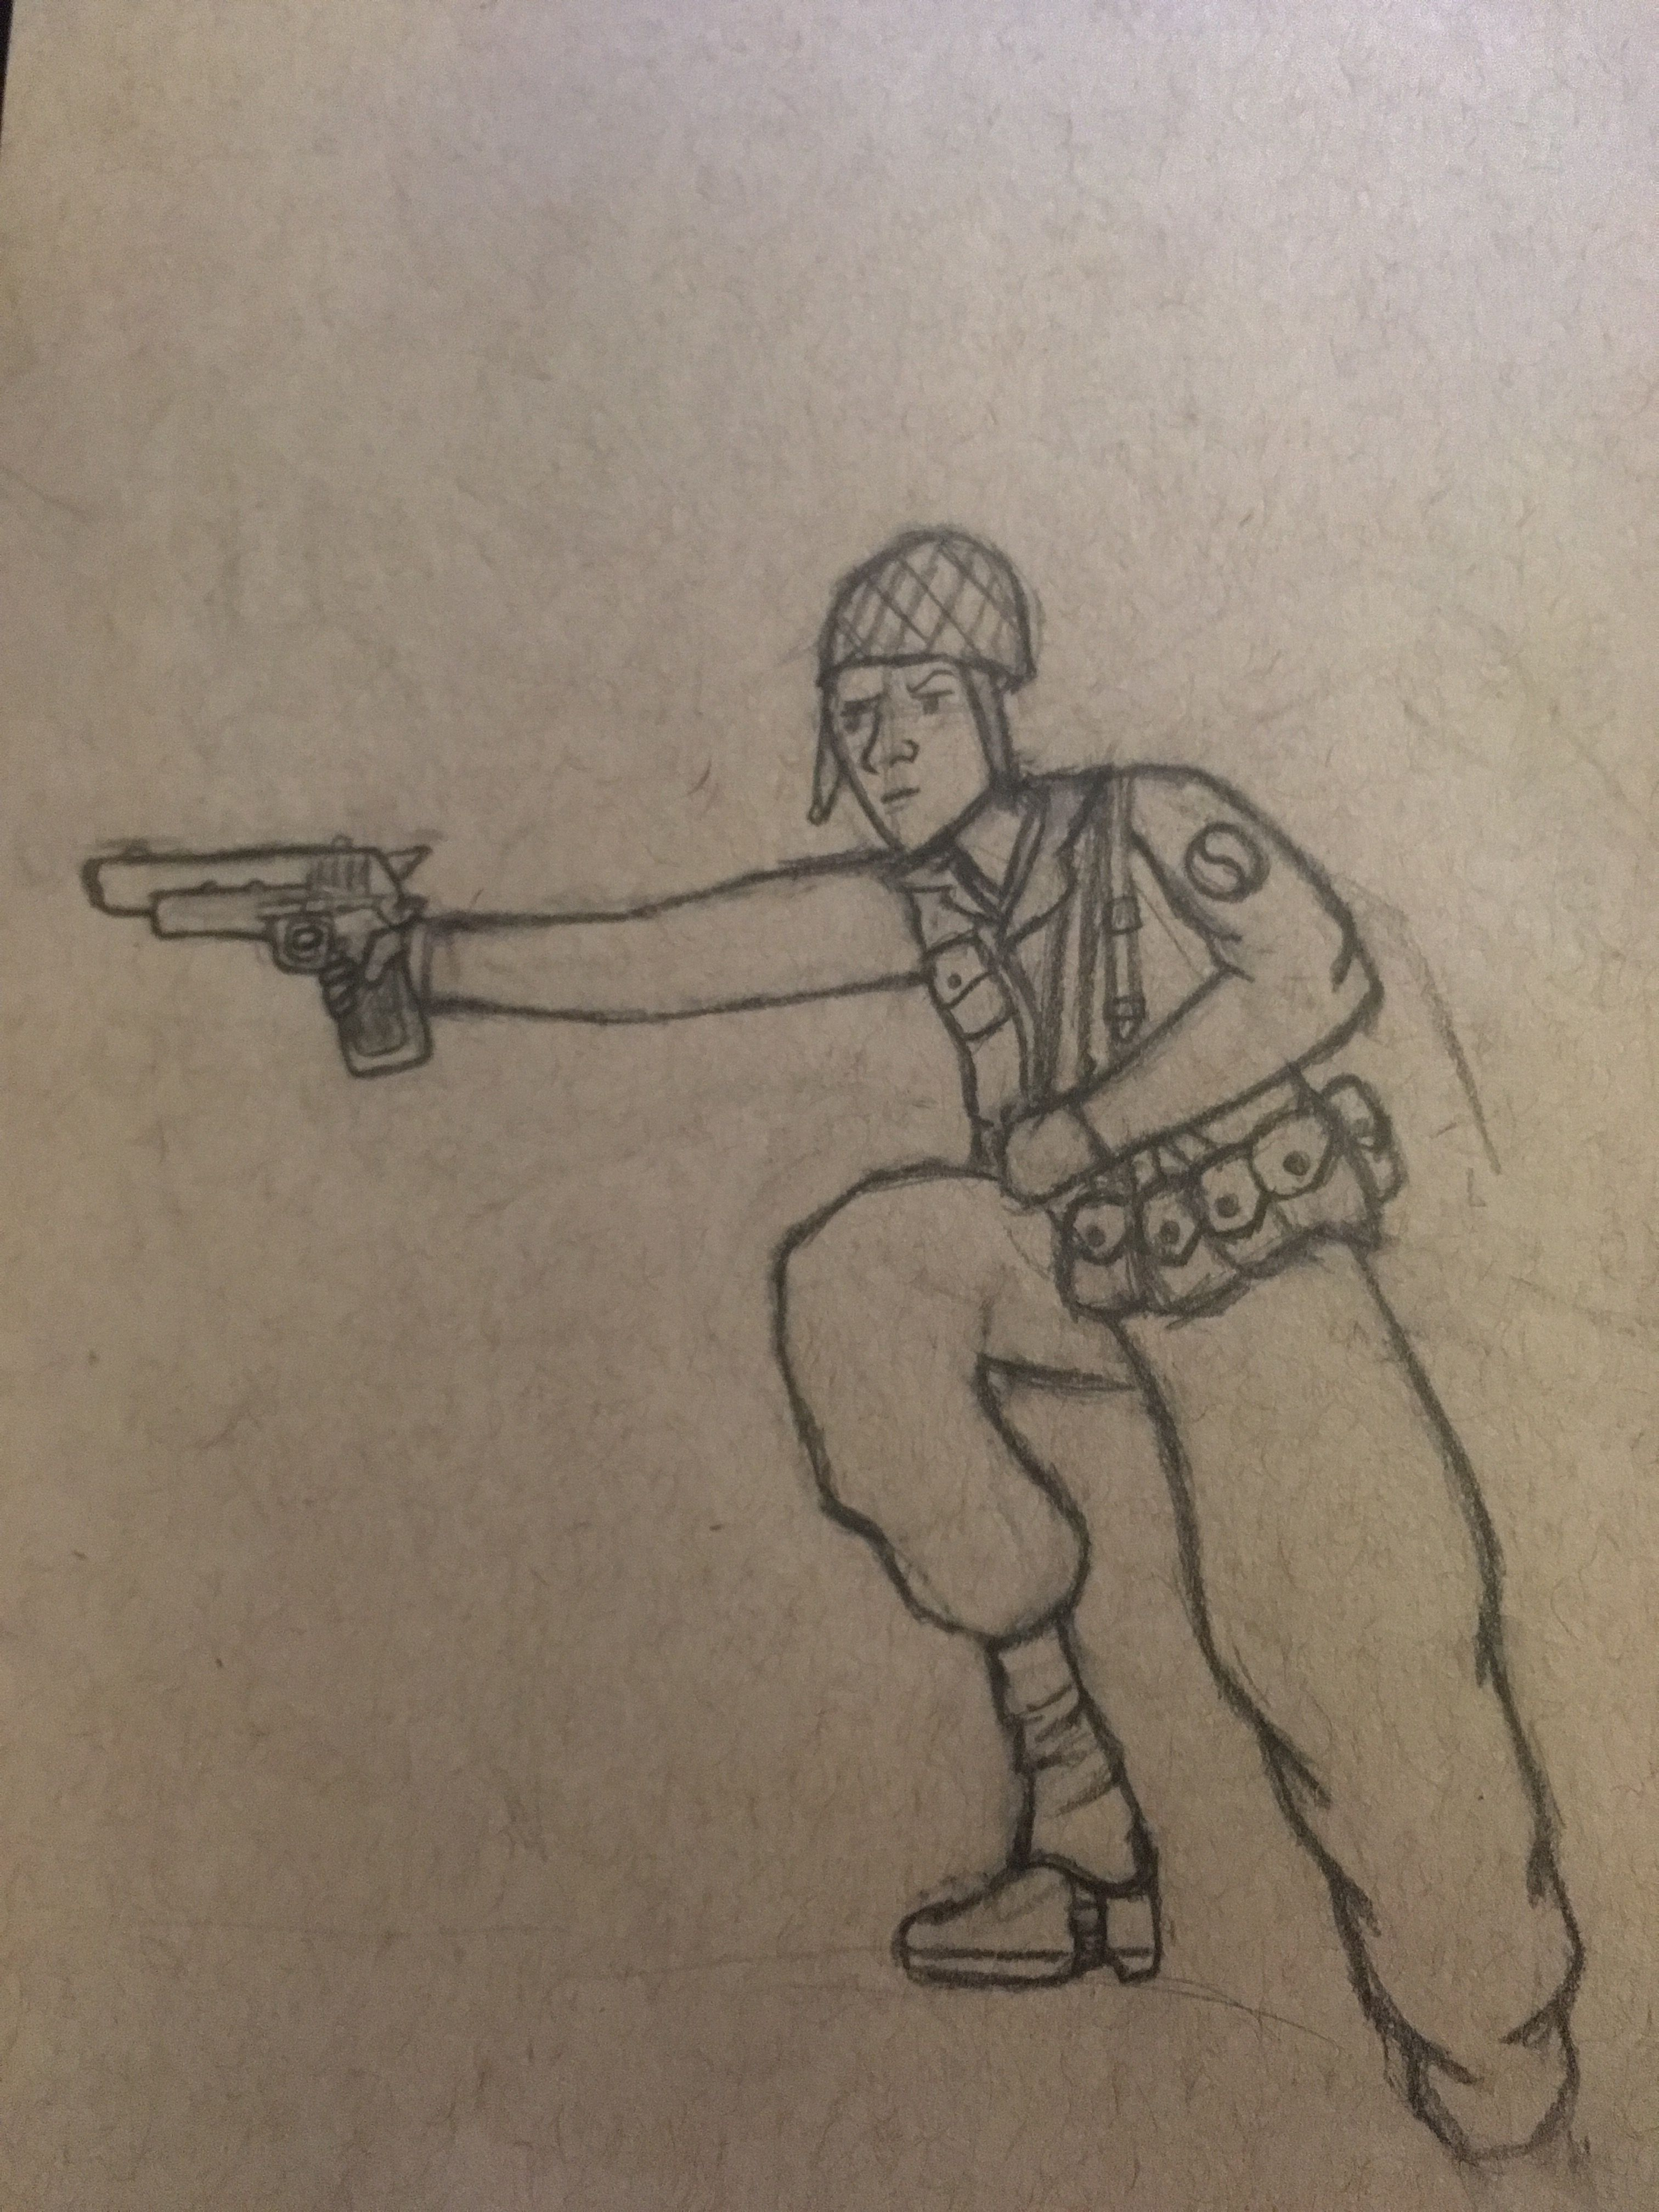 A Ww2 American Soldier Drawing I Did Ww2 Americansoldier Dontaee